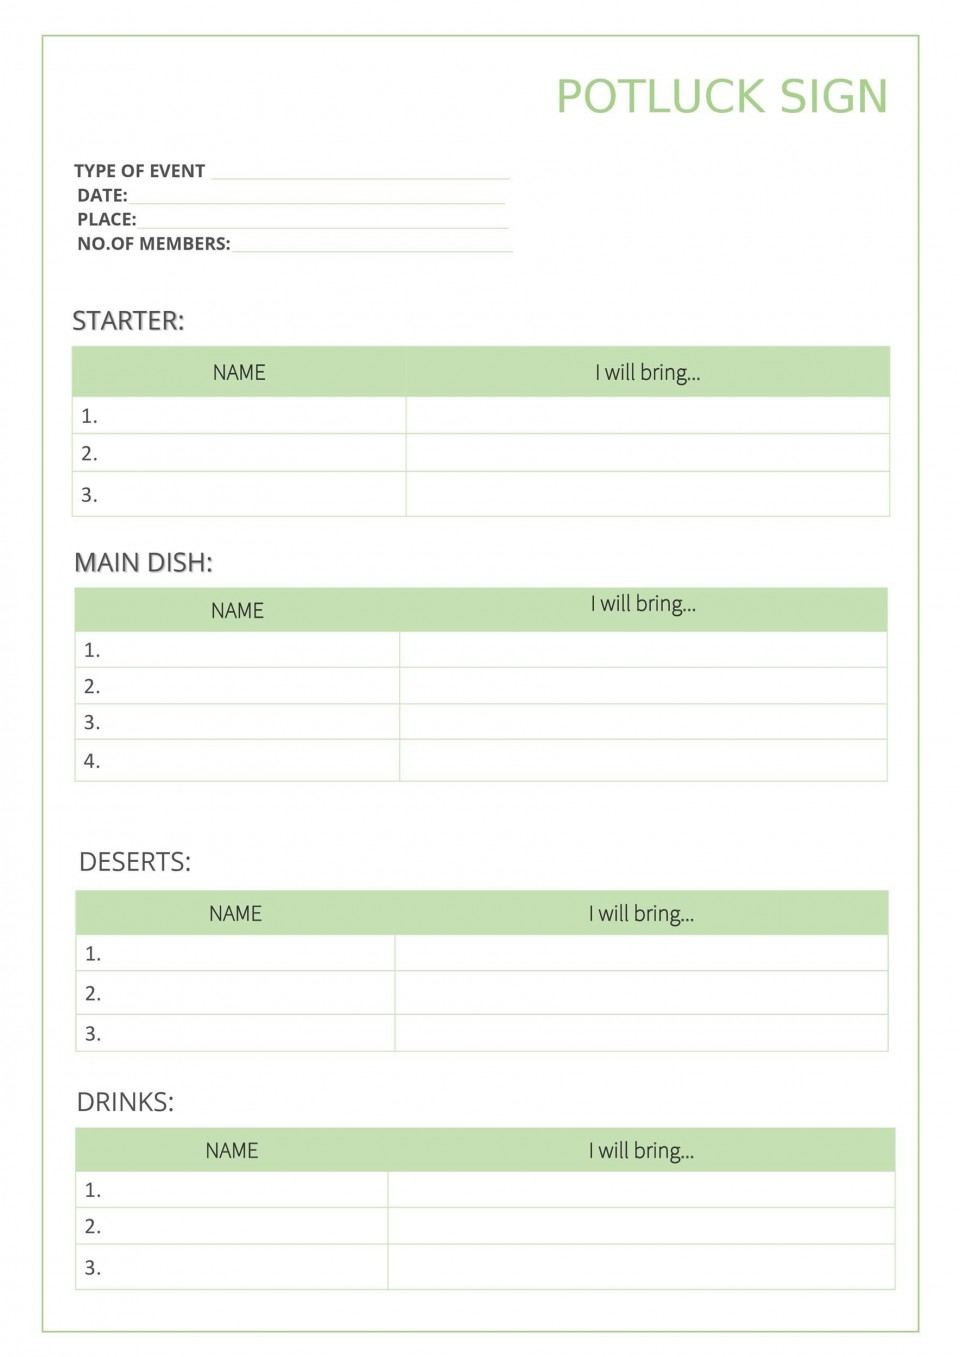 009 Outstanding Potluck Signup Sheet Template Word Photo  Microsoft Free Printable Sign Up960